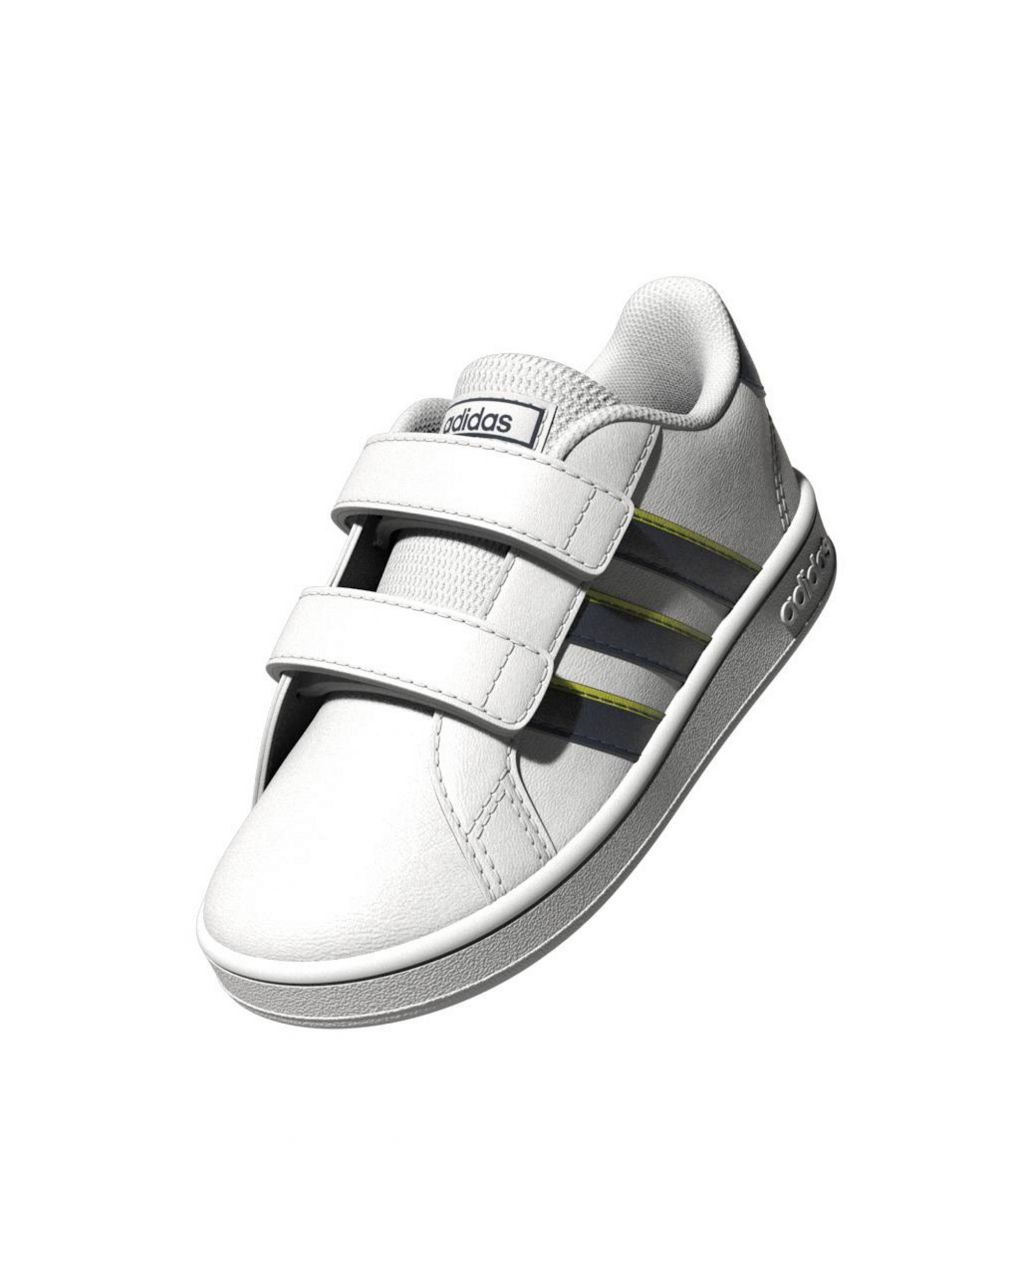 Grand court shoes - Adidas